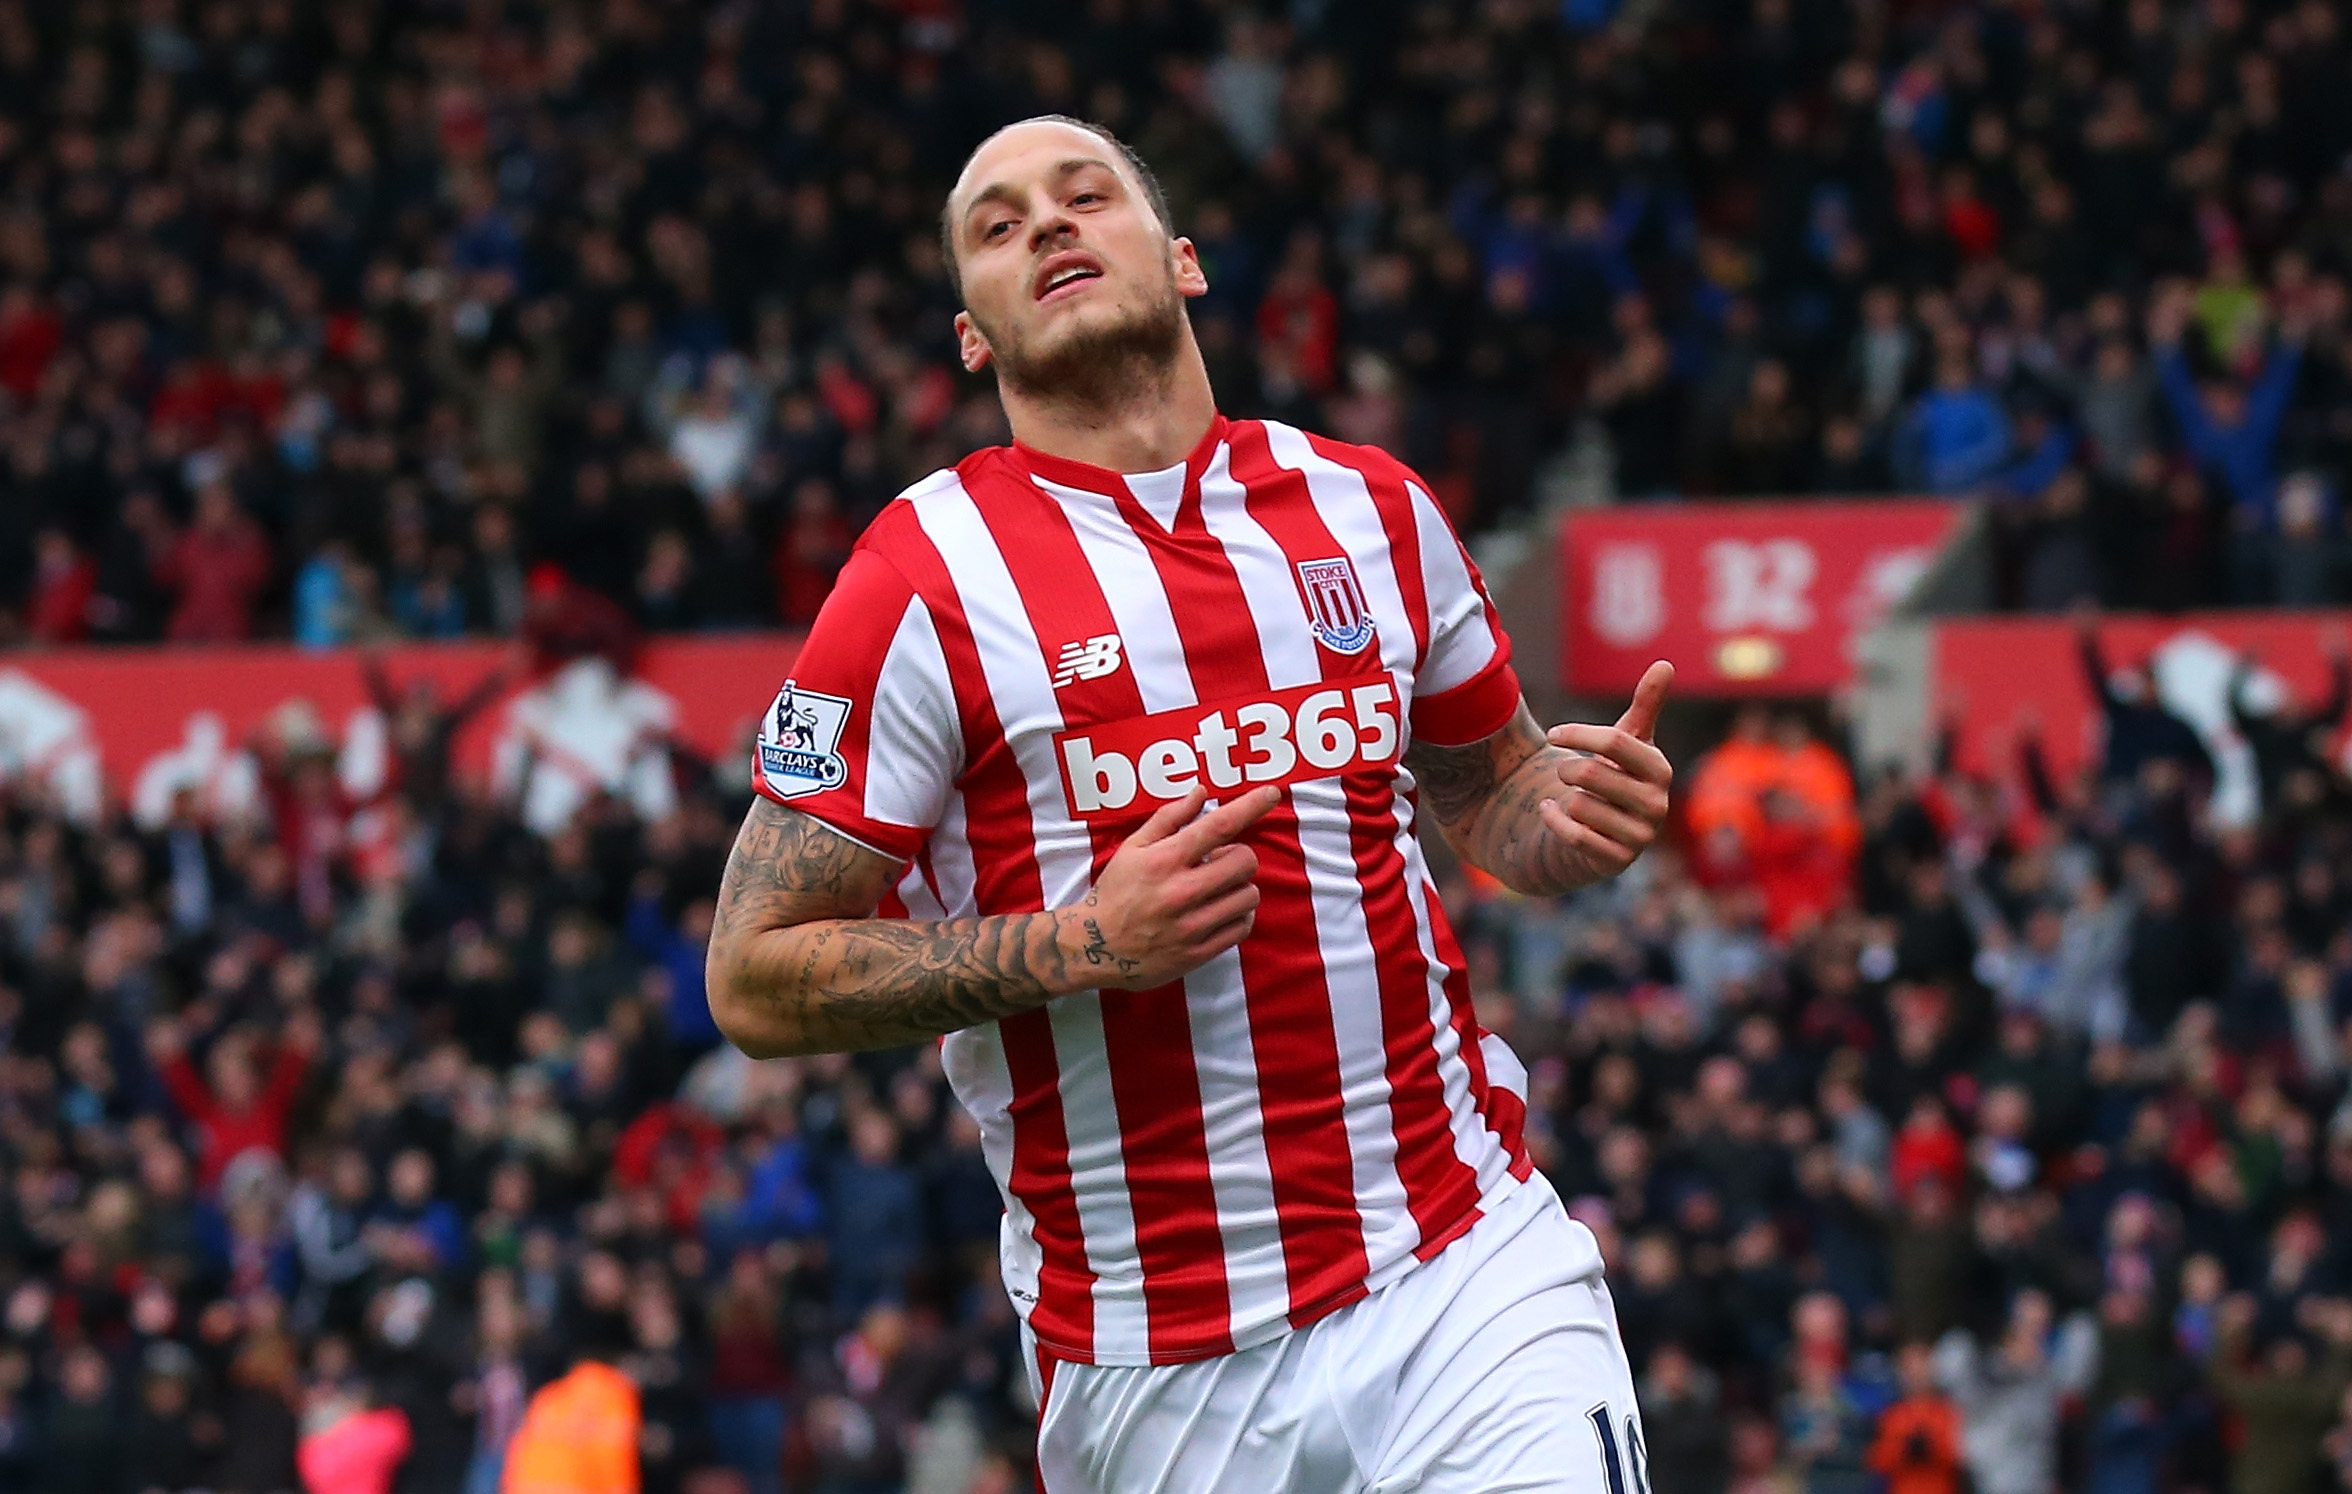 Marko Arnautovic Stoke City form earns Paris Saint-Germain transfer interest – report